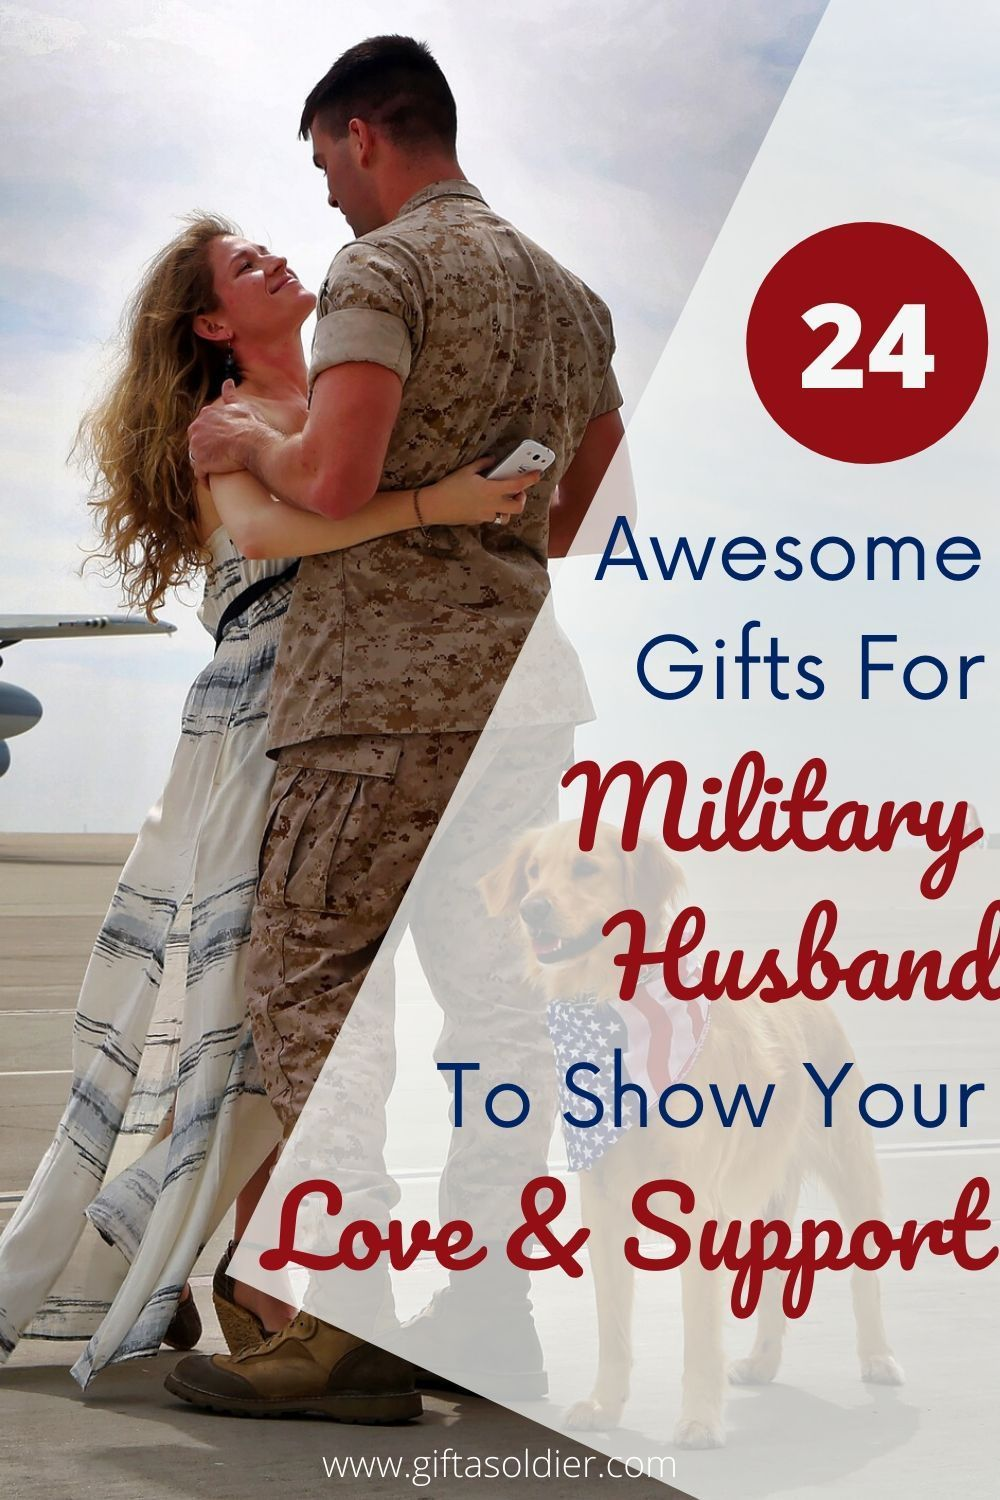 24 Best Gifts For Military Husband To Show Your Love and